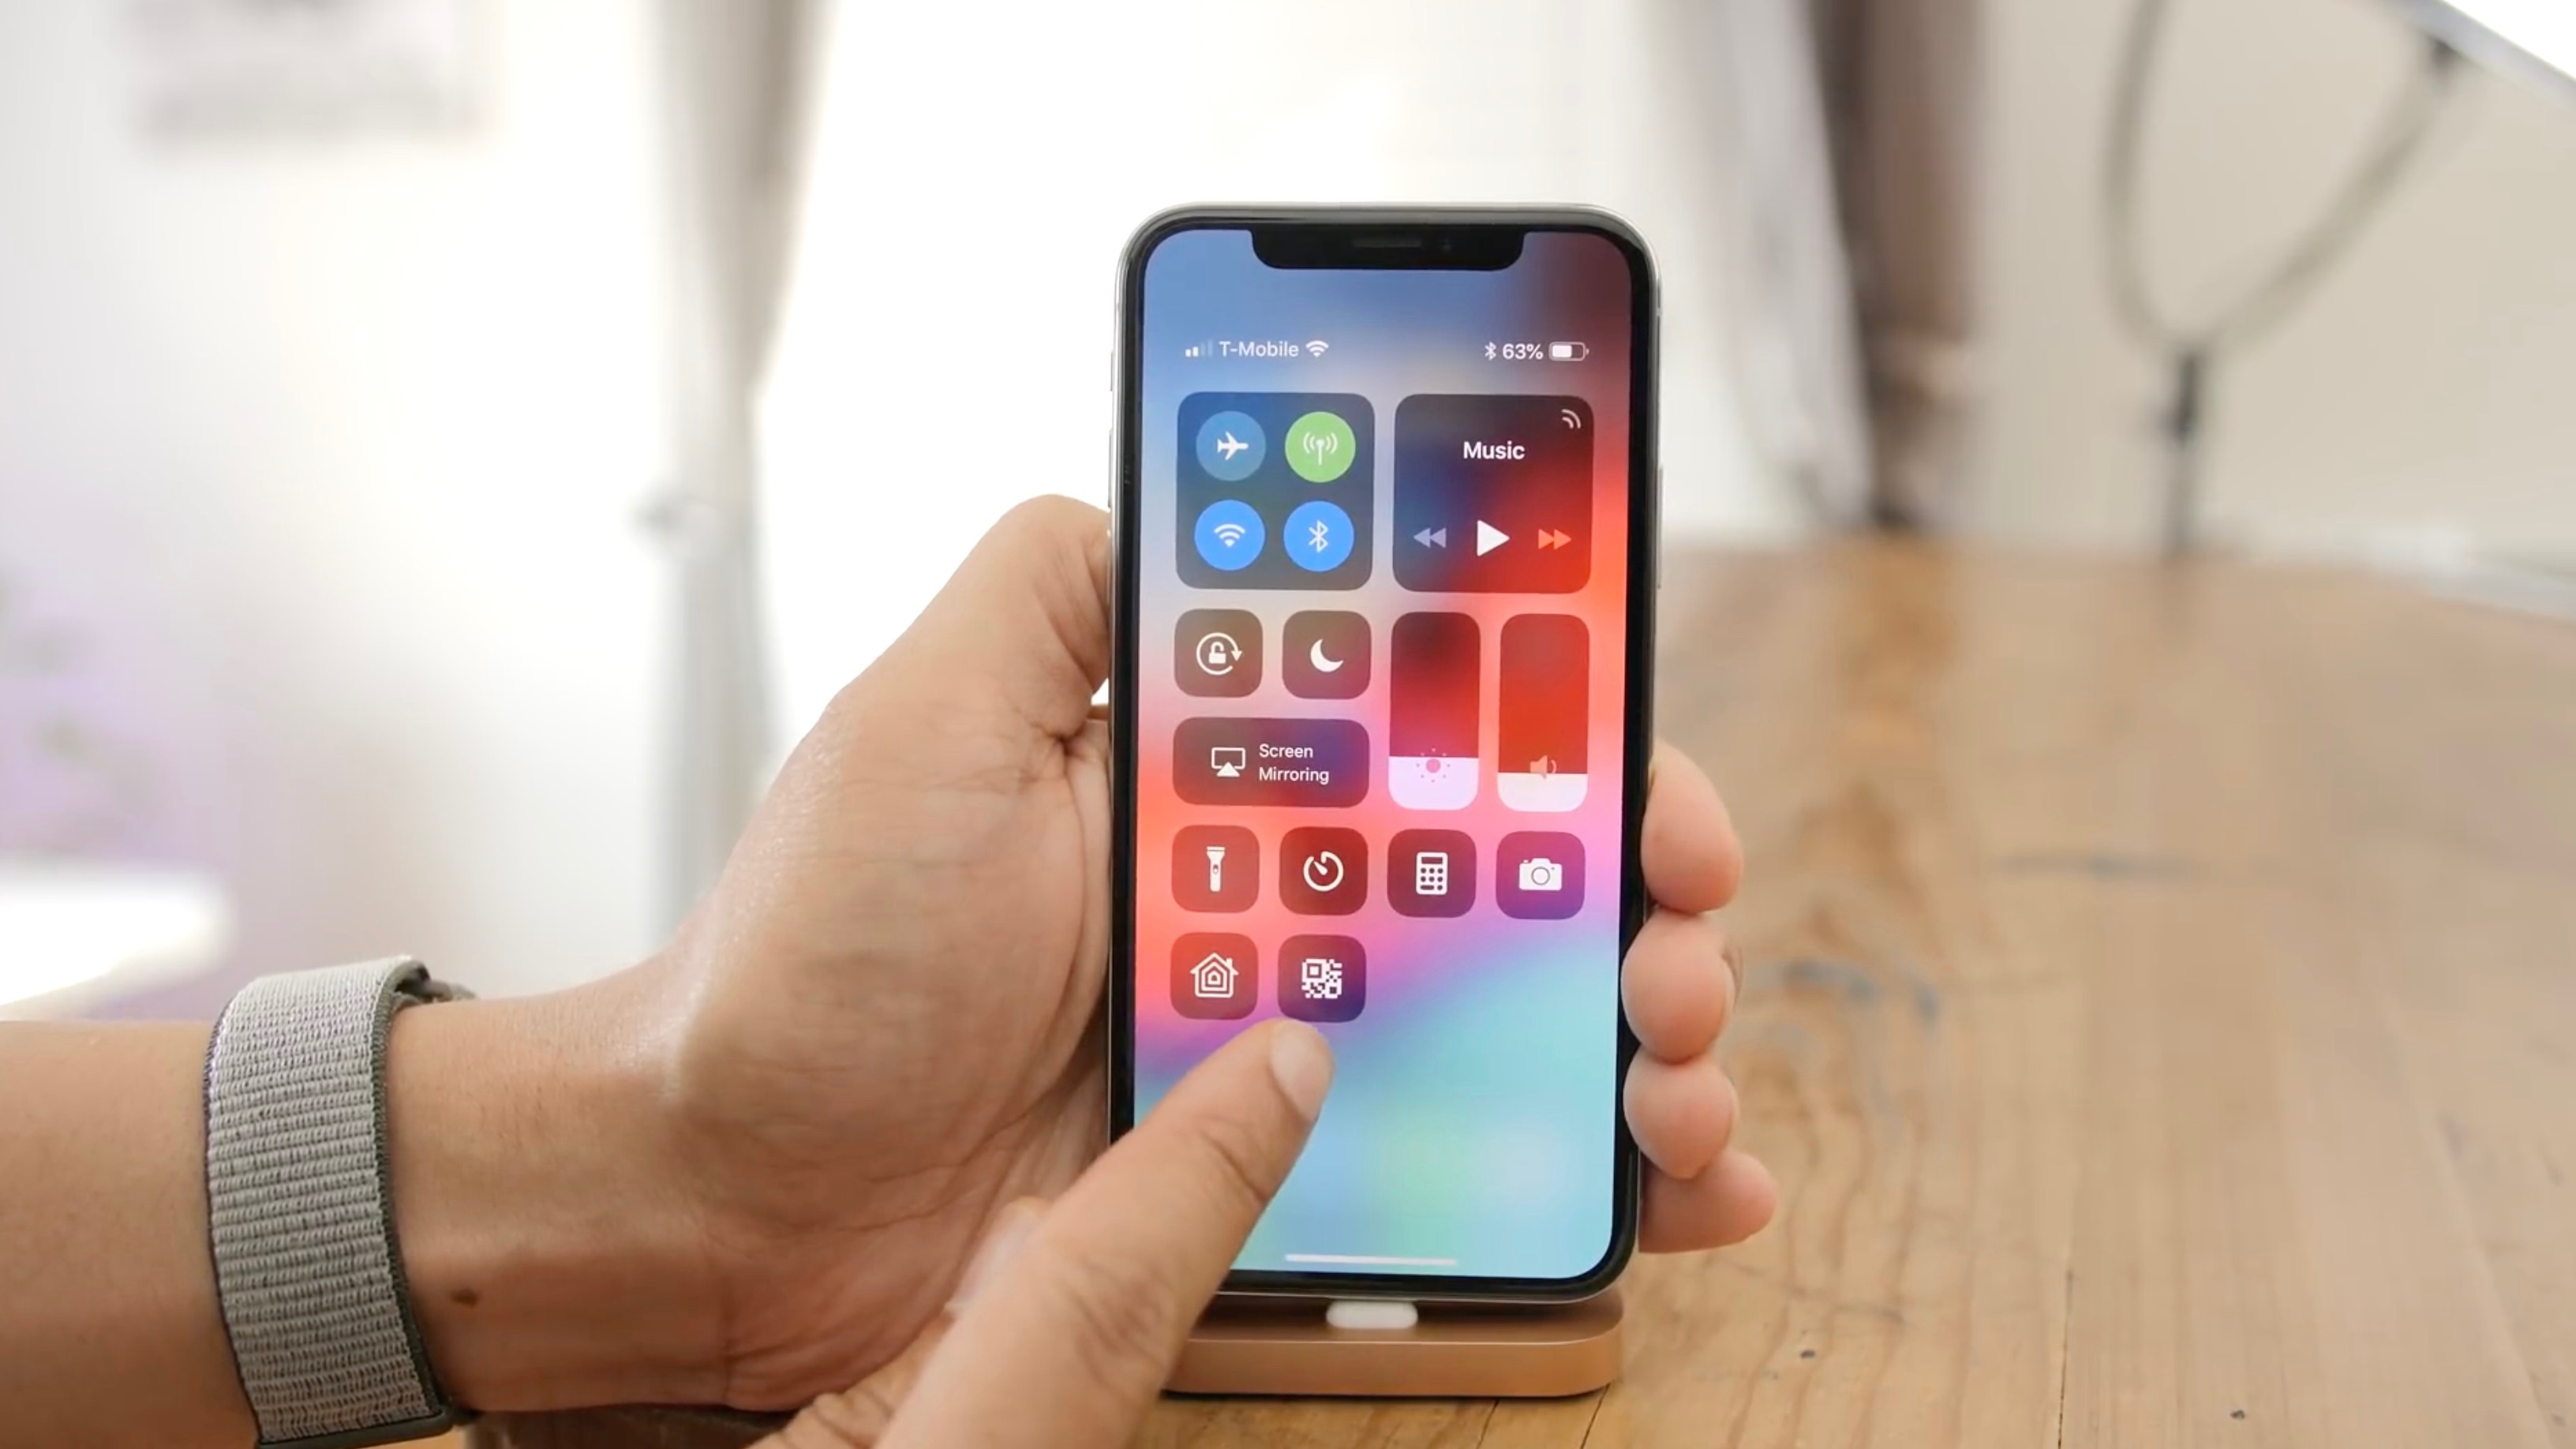 iOS 12: How to use the Control Center scan QR code shortcut on